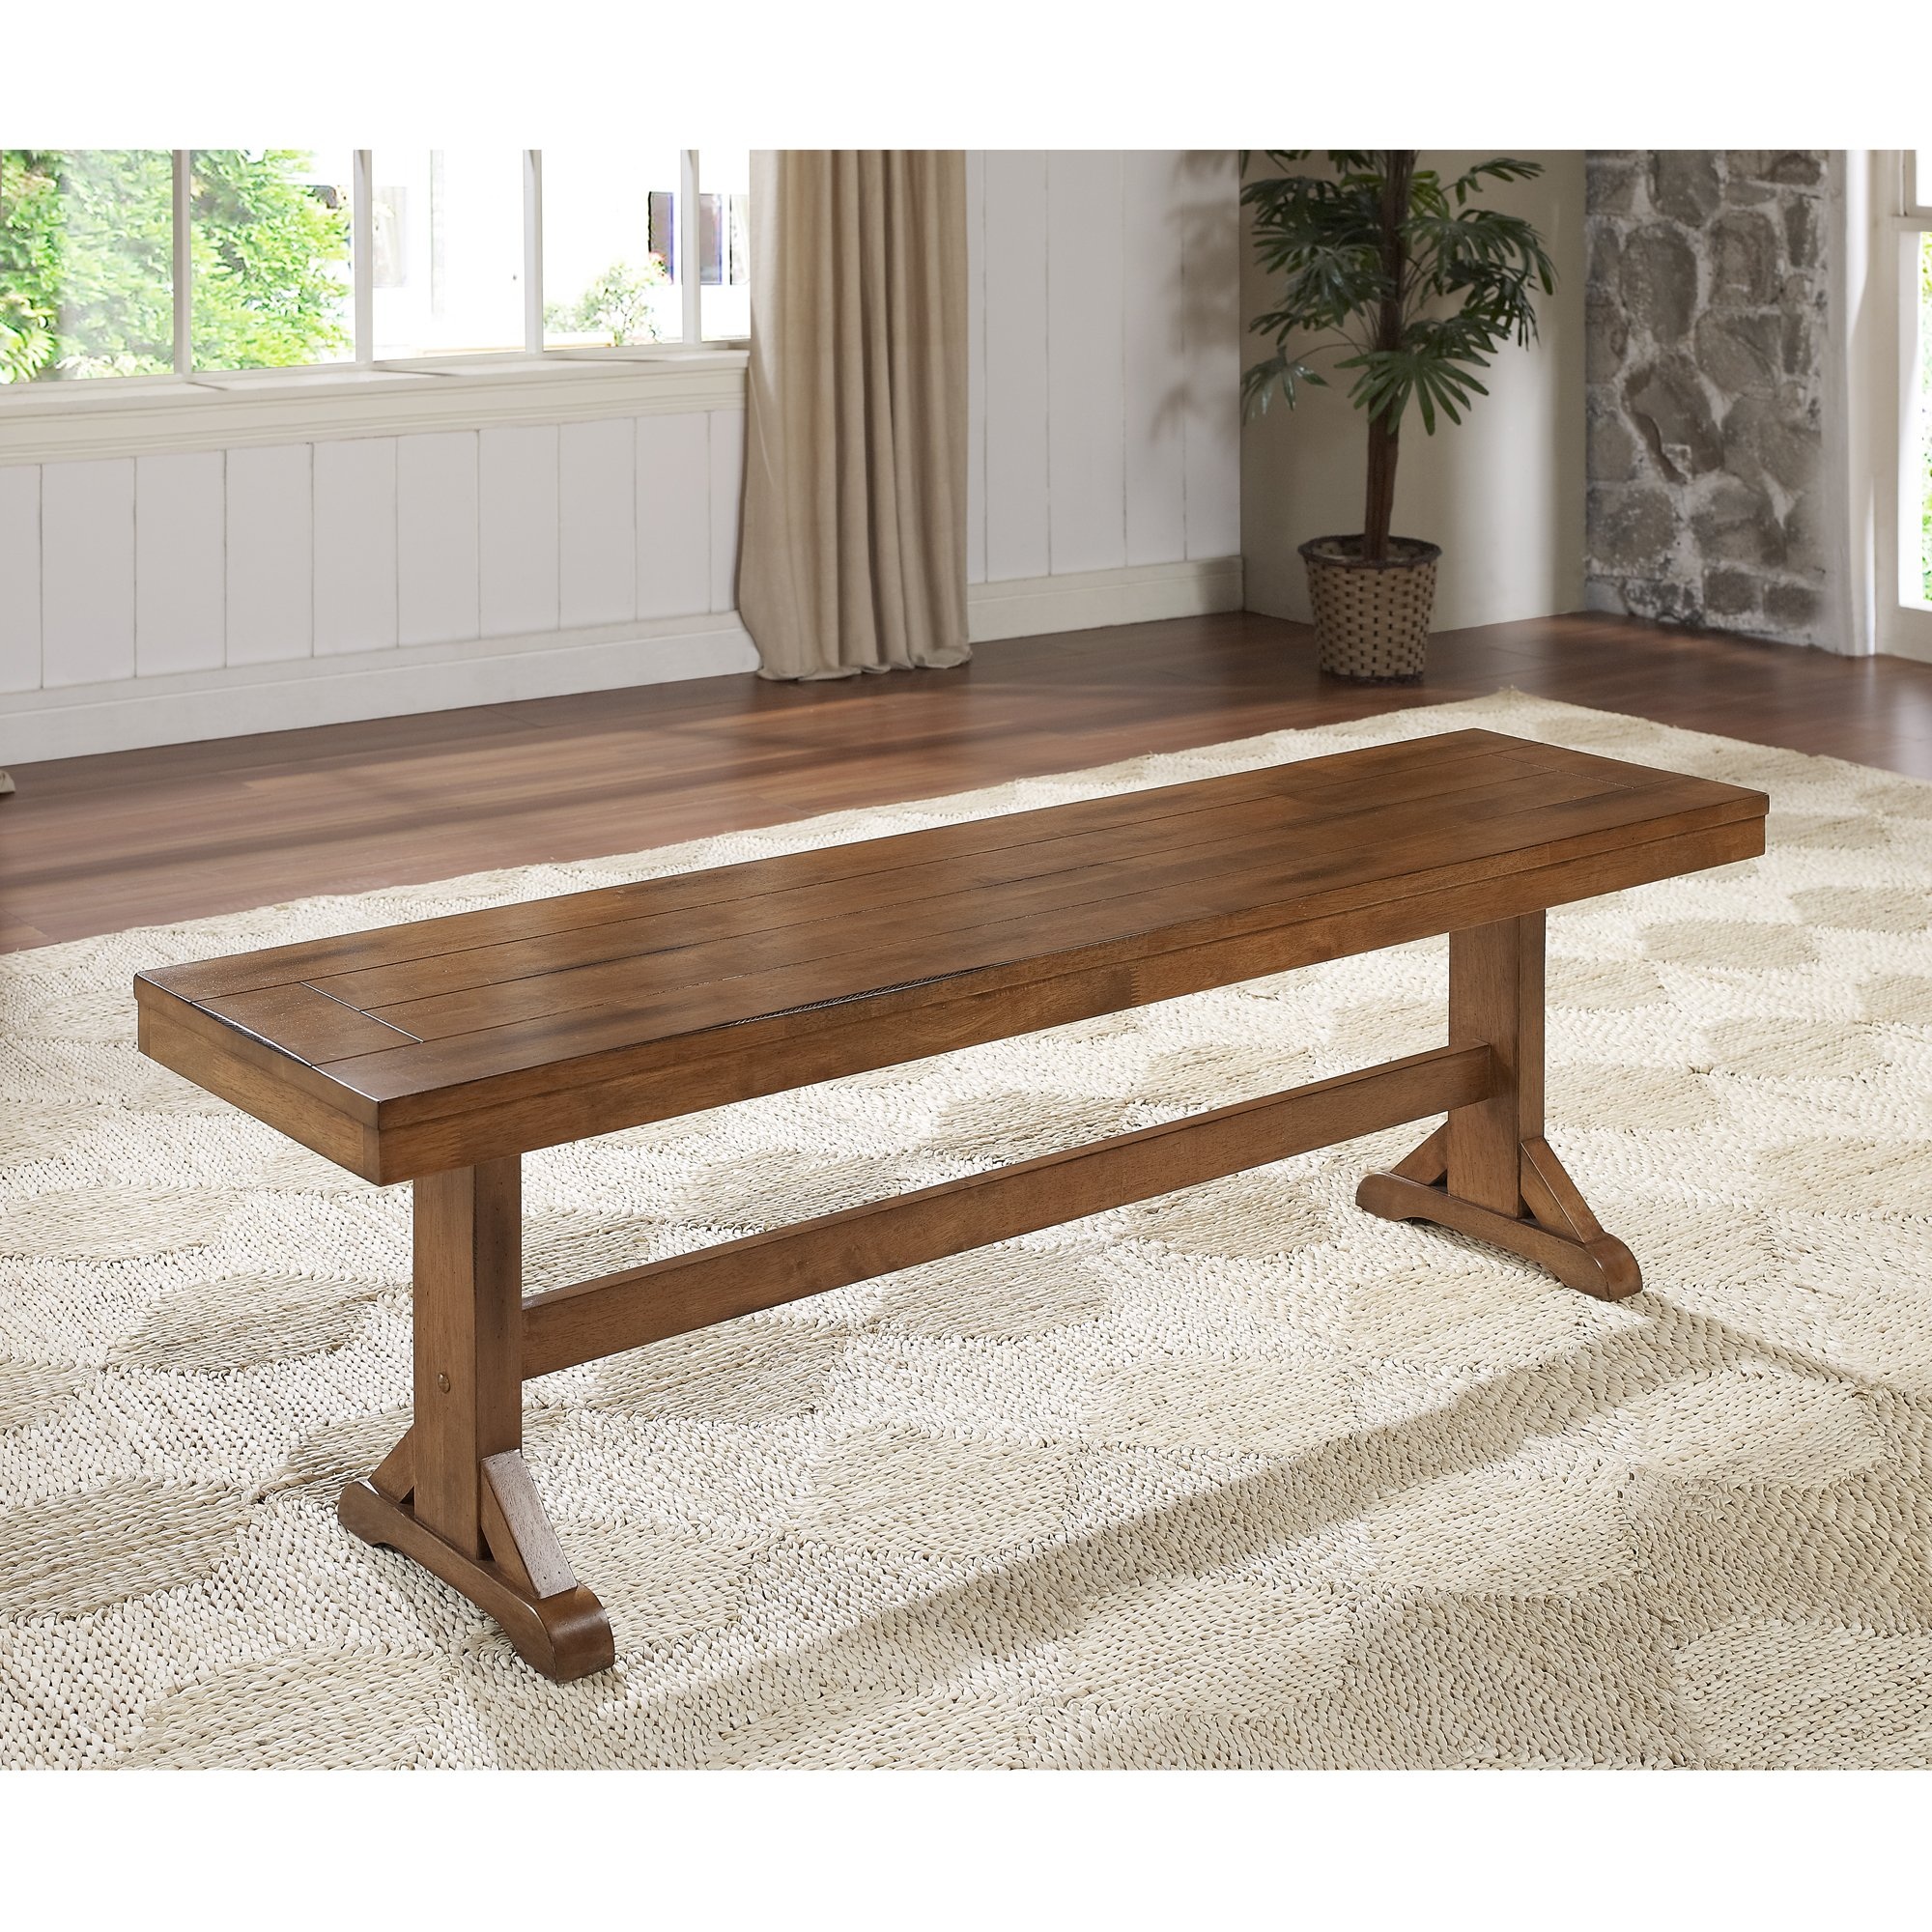 WE Furniture Solid Wood Brown Dining Bench by WE Furniture (Image #1)